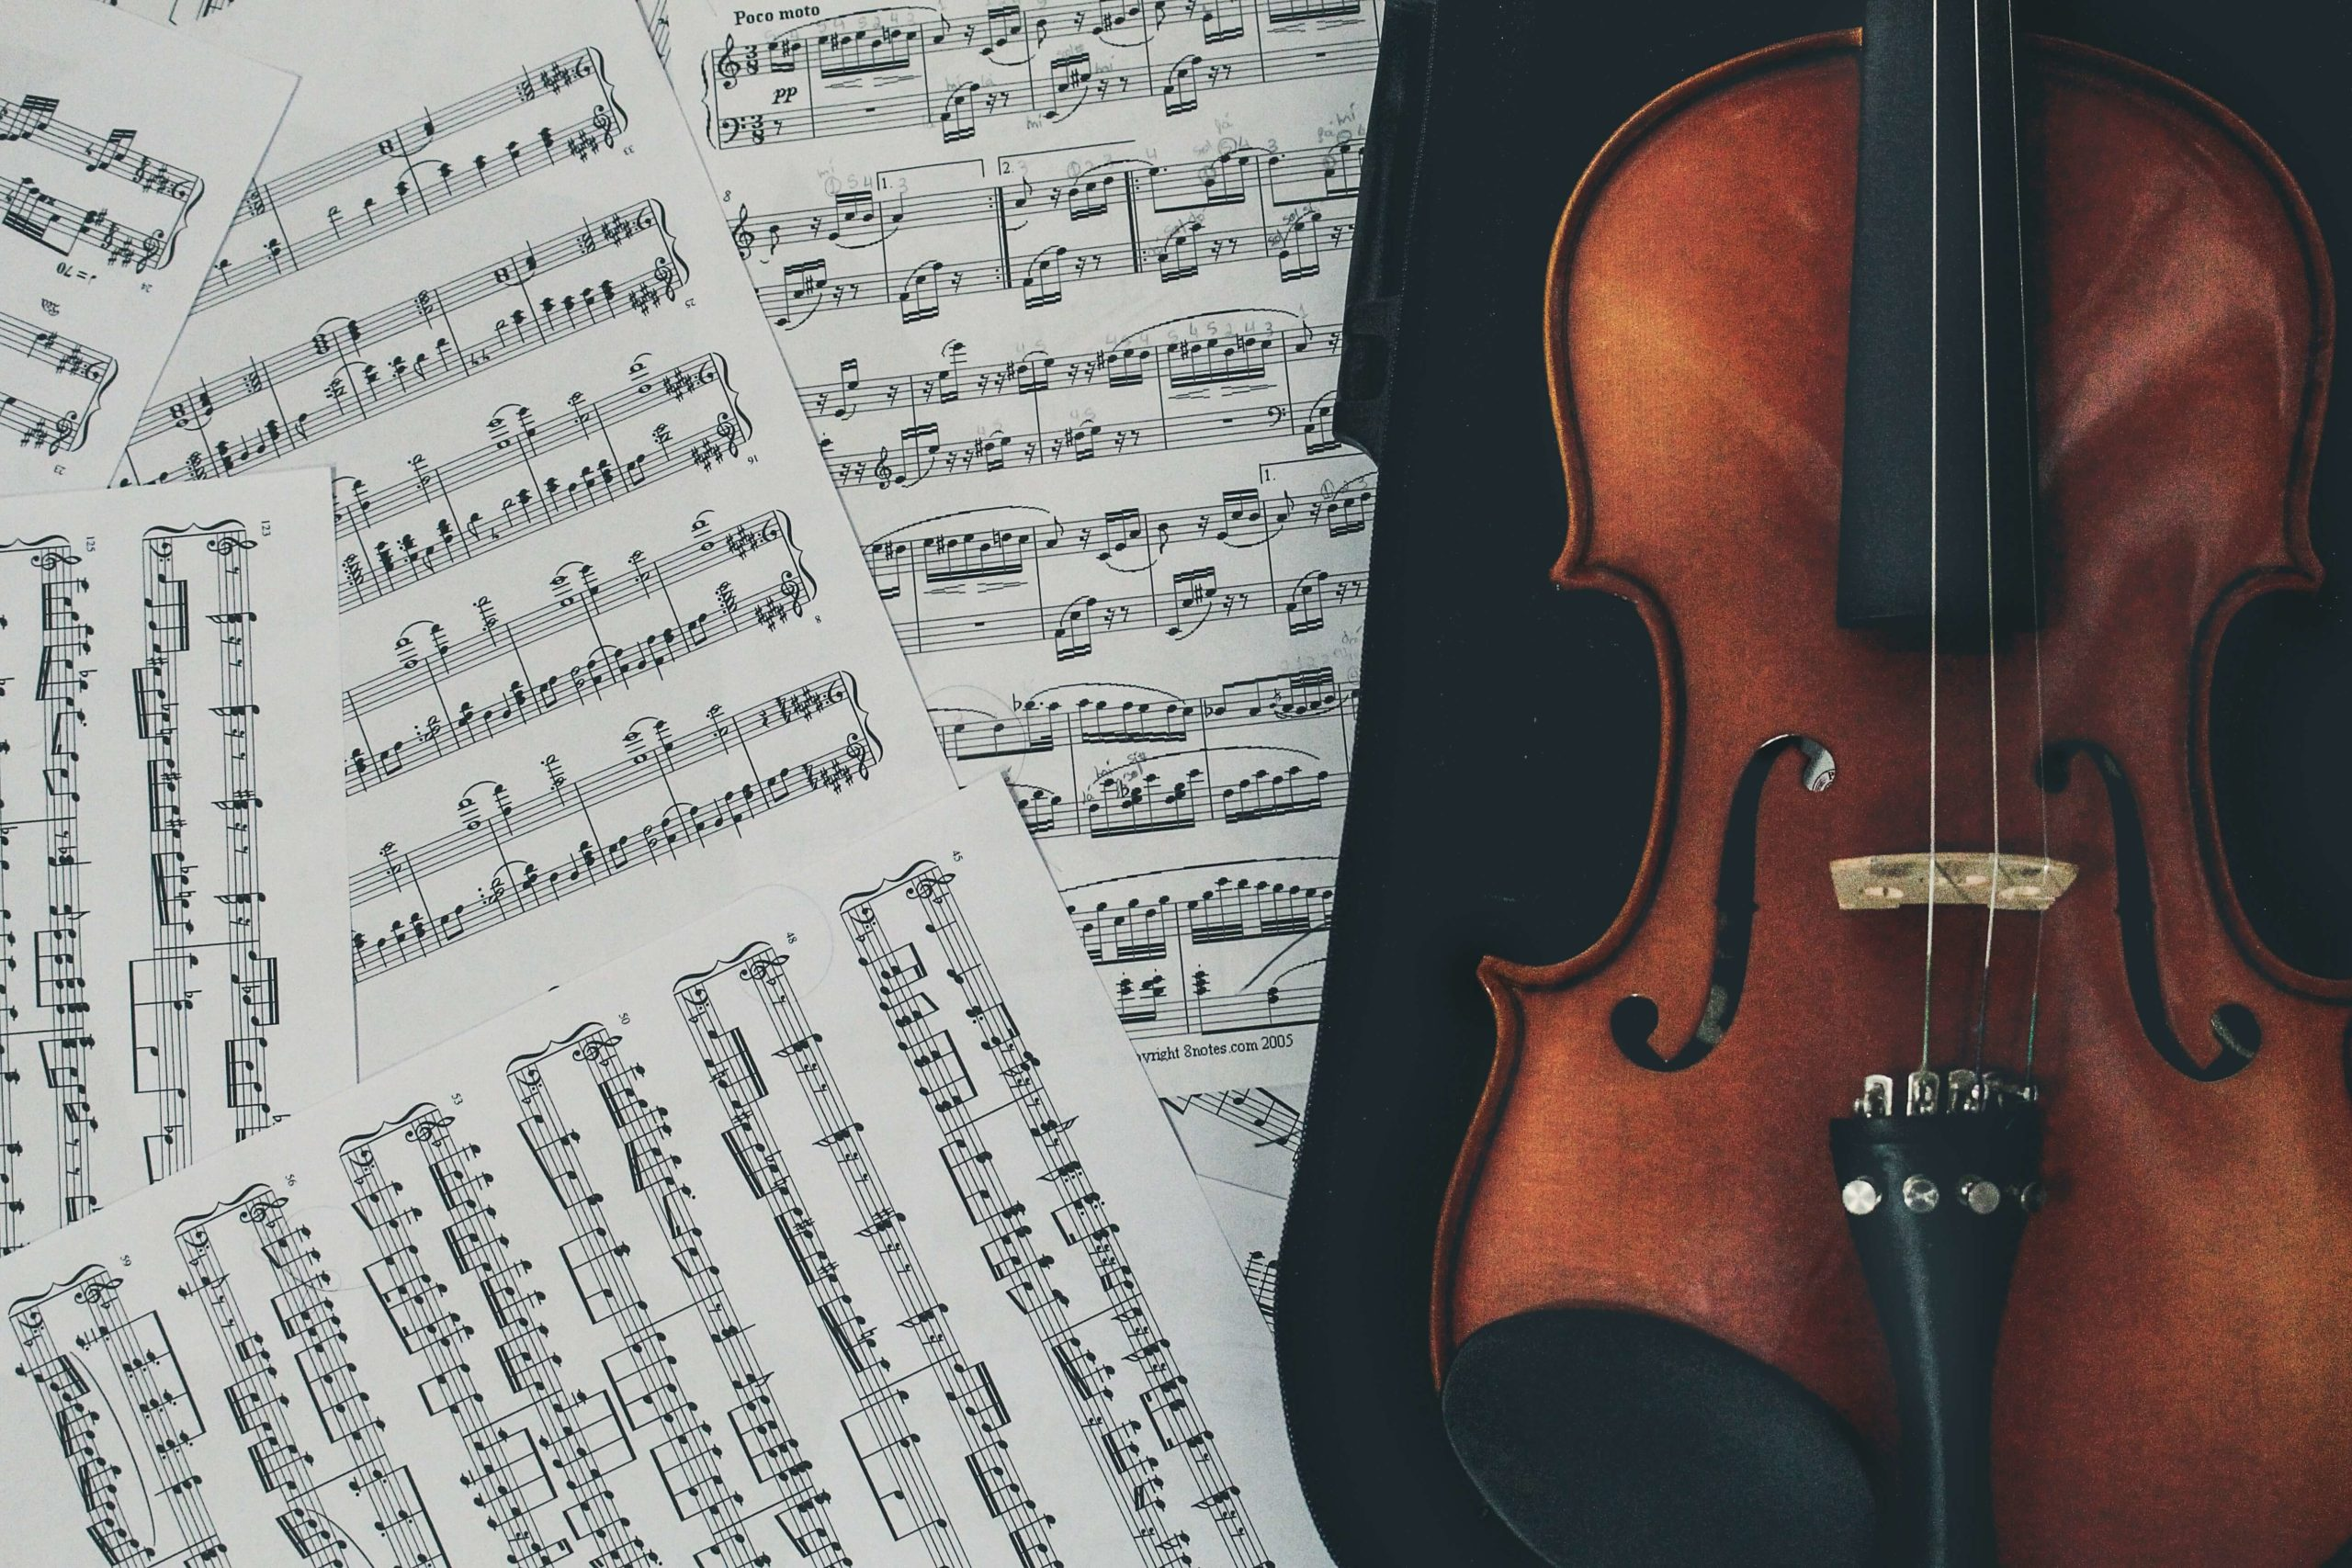 Several sheets of music are laid out on a black surface next to a wooden violin, which has three strings.